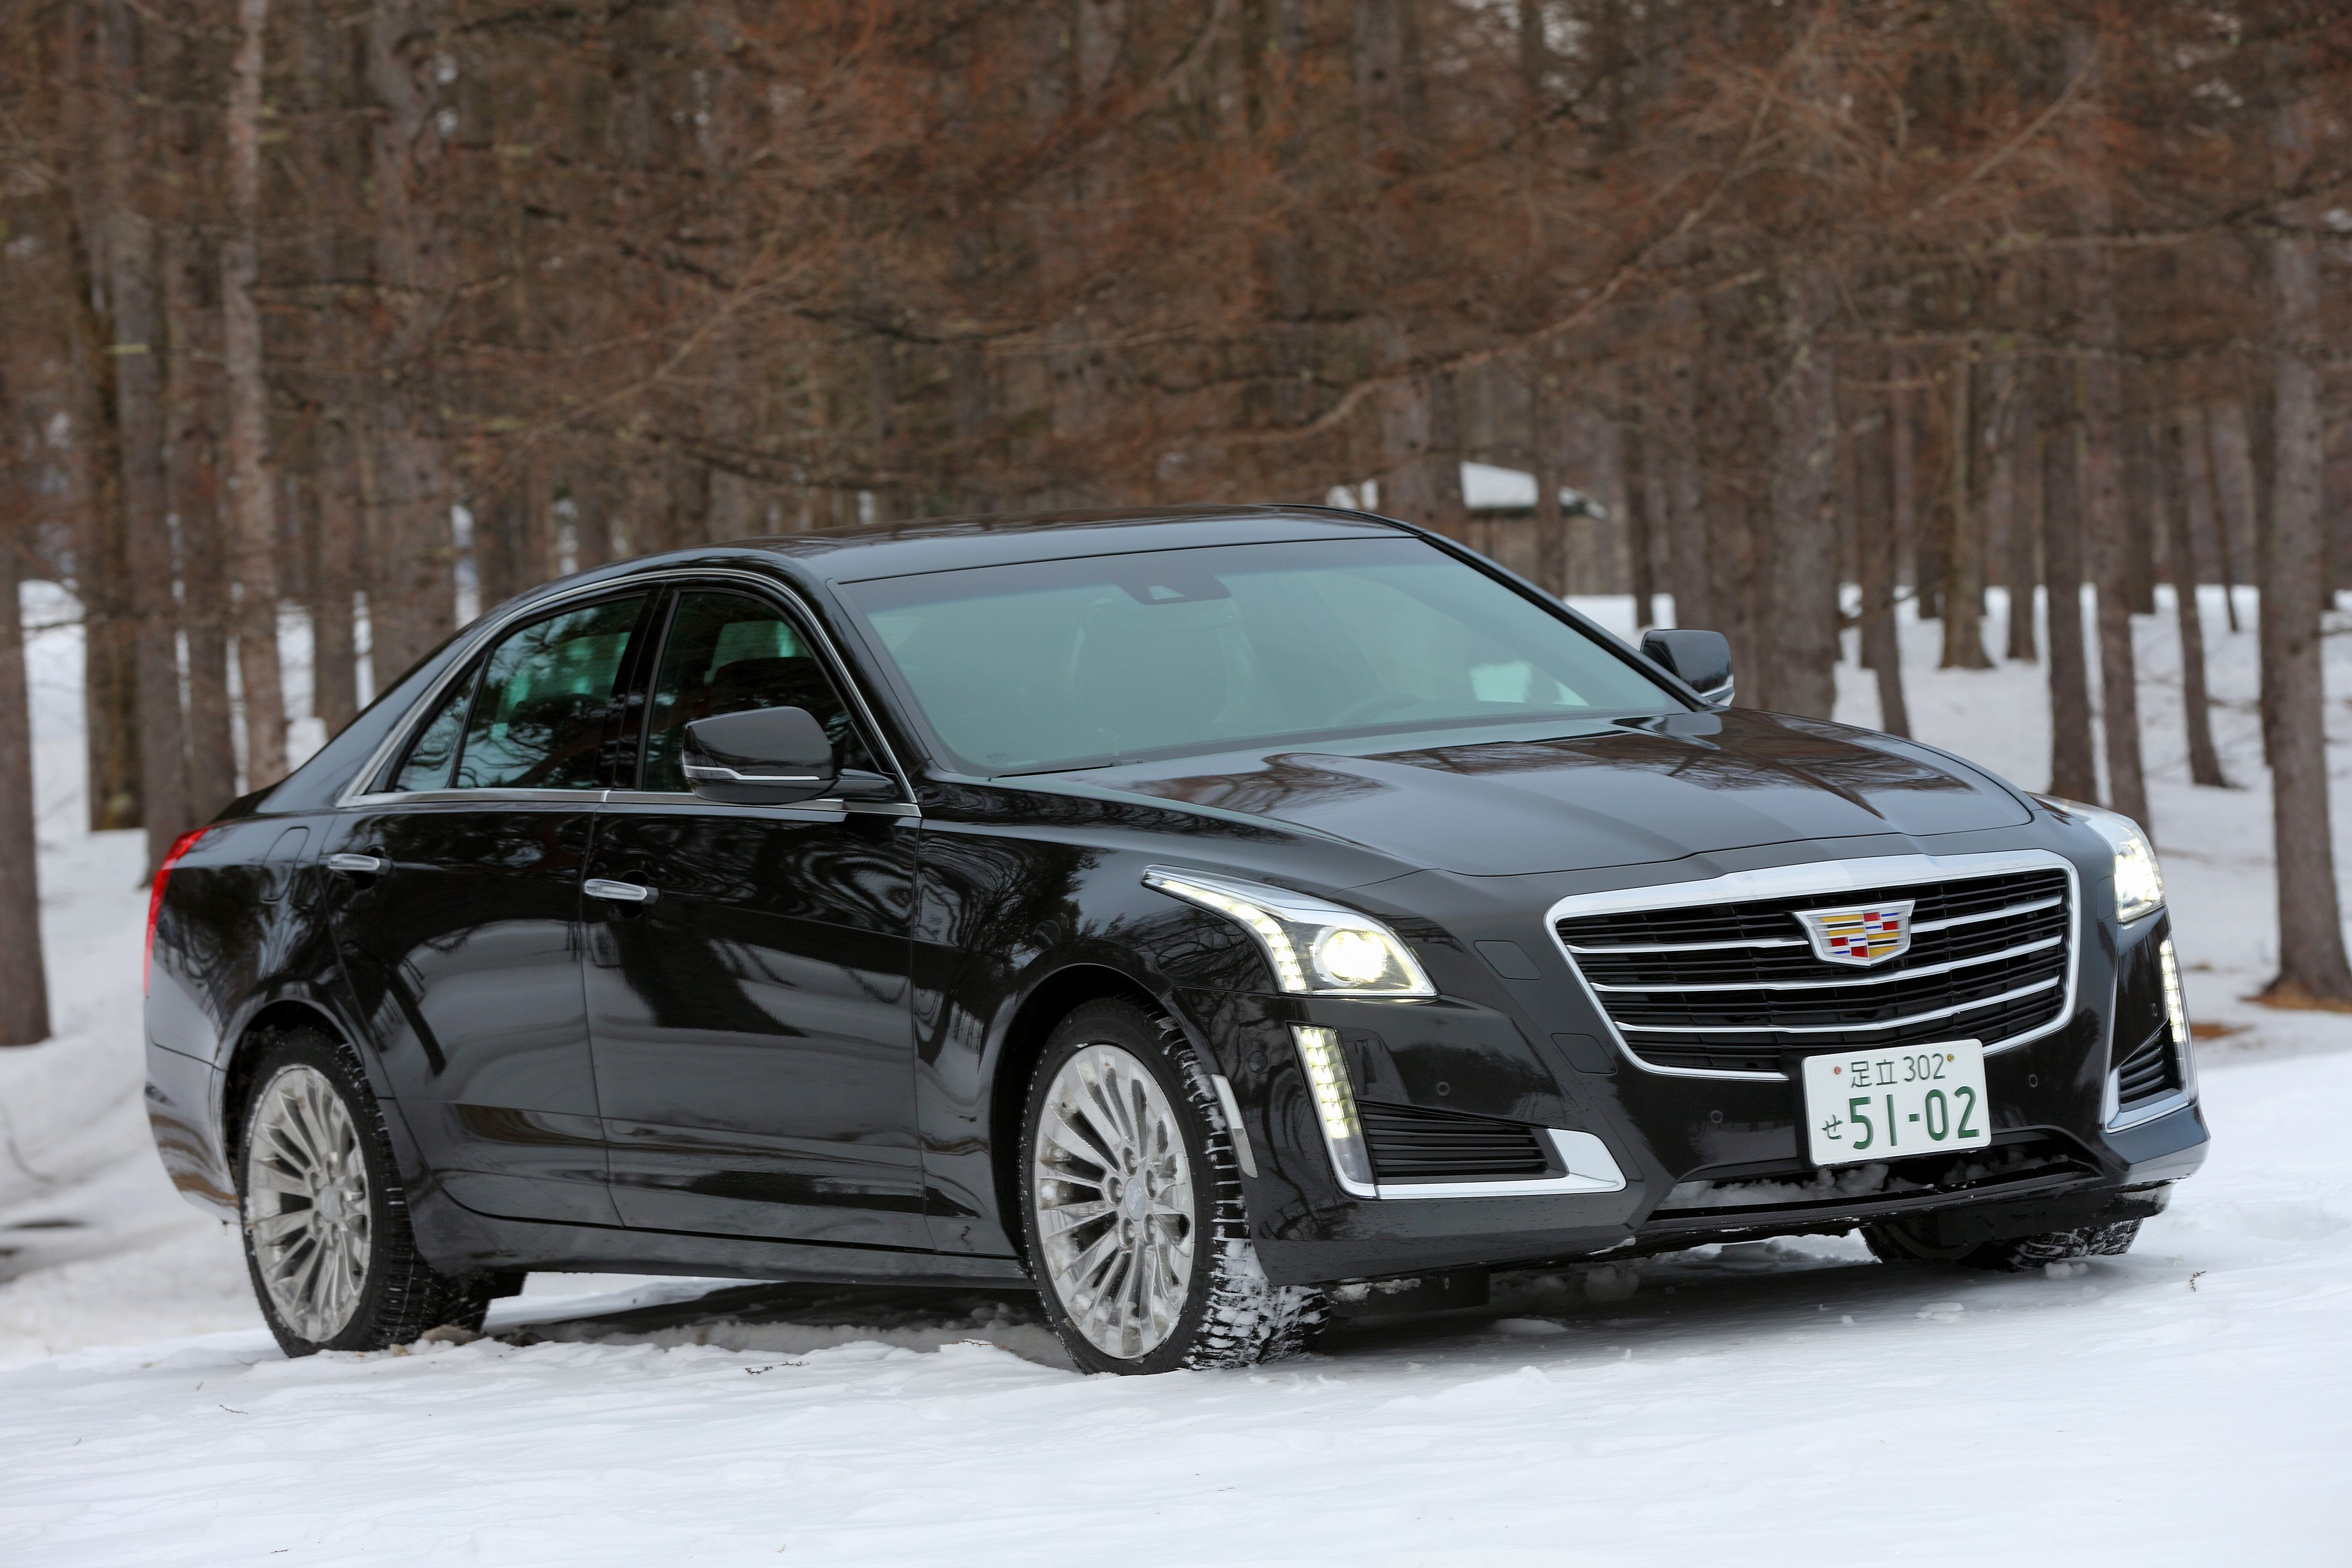 and alloy forged unveils sedan balanced challenge img sporty inch at time bold also meanwhile theme give rivals same wheels rear a horsepower german wields fascia naias look continue performance issues v cadillac aluminium the cts